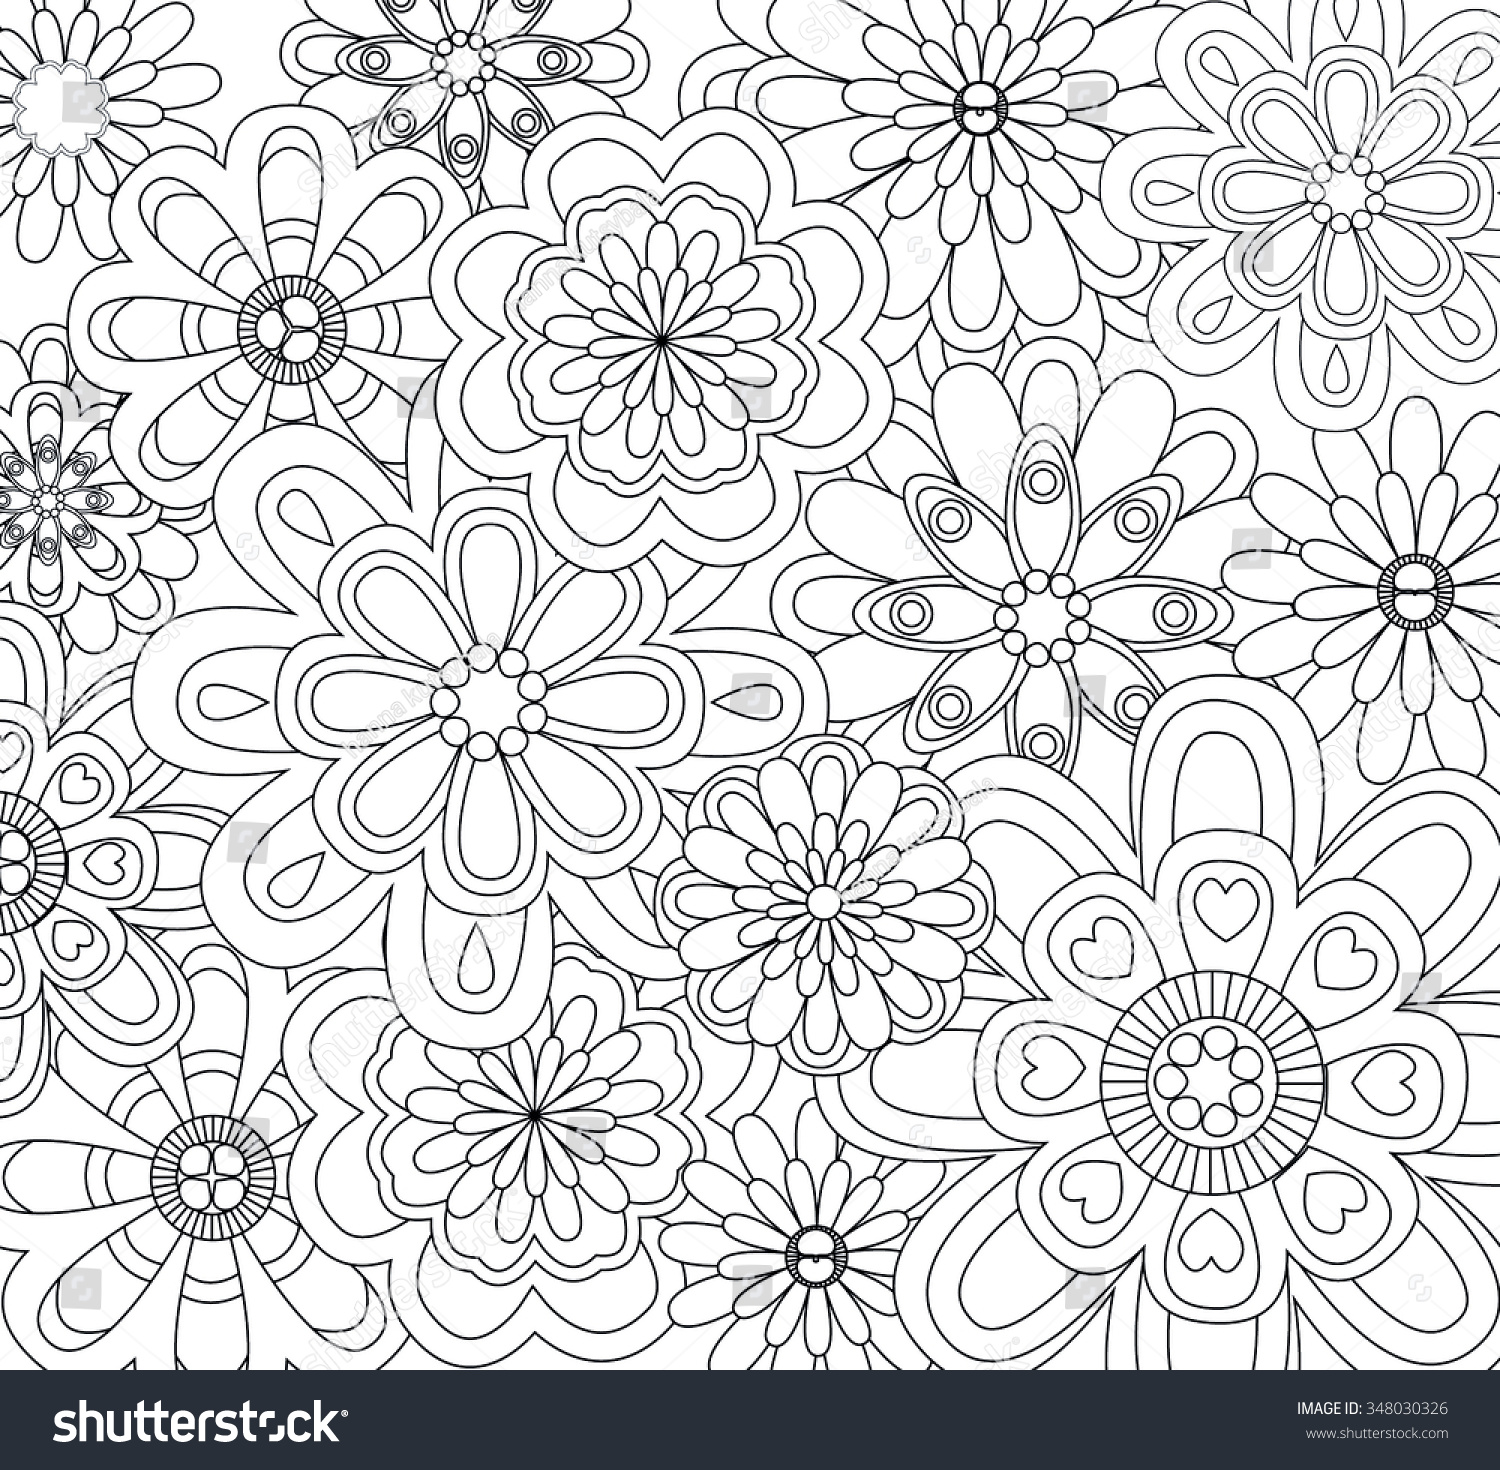 Coloring Pages Background Coloring Pages hand drawn flower background isolated on stock vector 348030326 white anti stress coloring page monochrome sketch